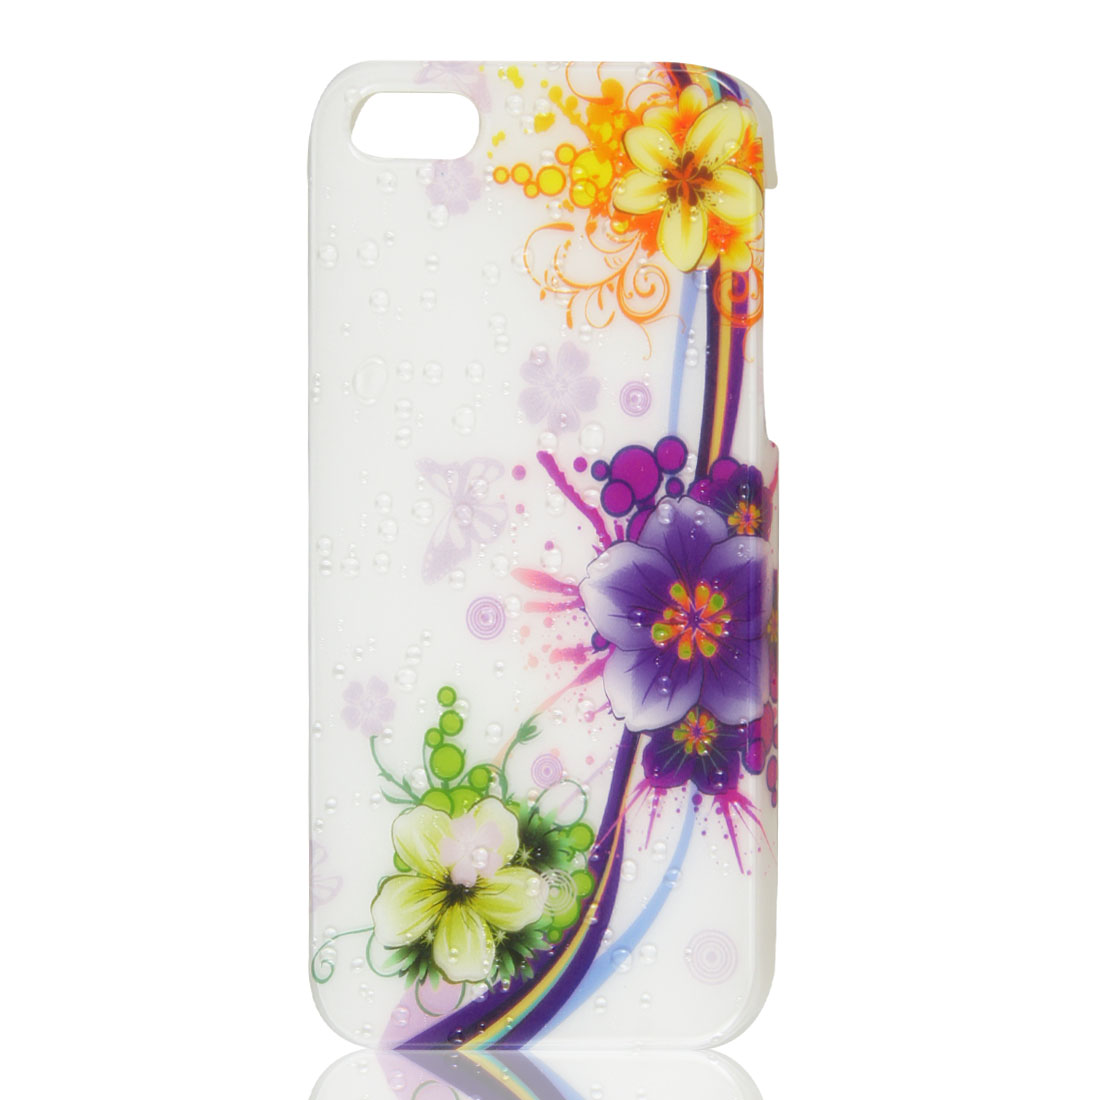 3D Water Drop Waterdrop & Floral Hard Back Case Skin Cover for iPhone 5 5G